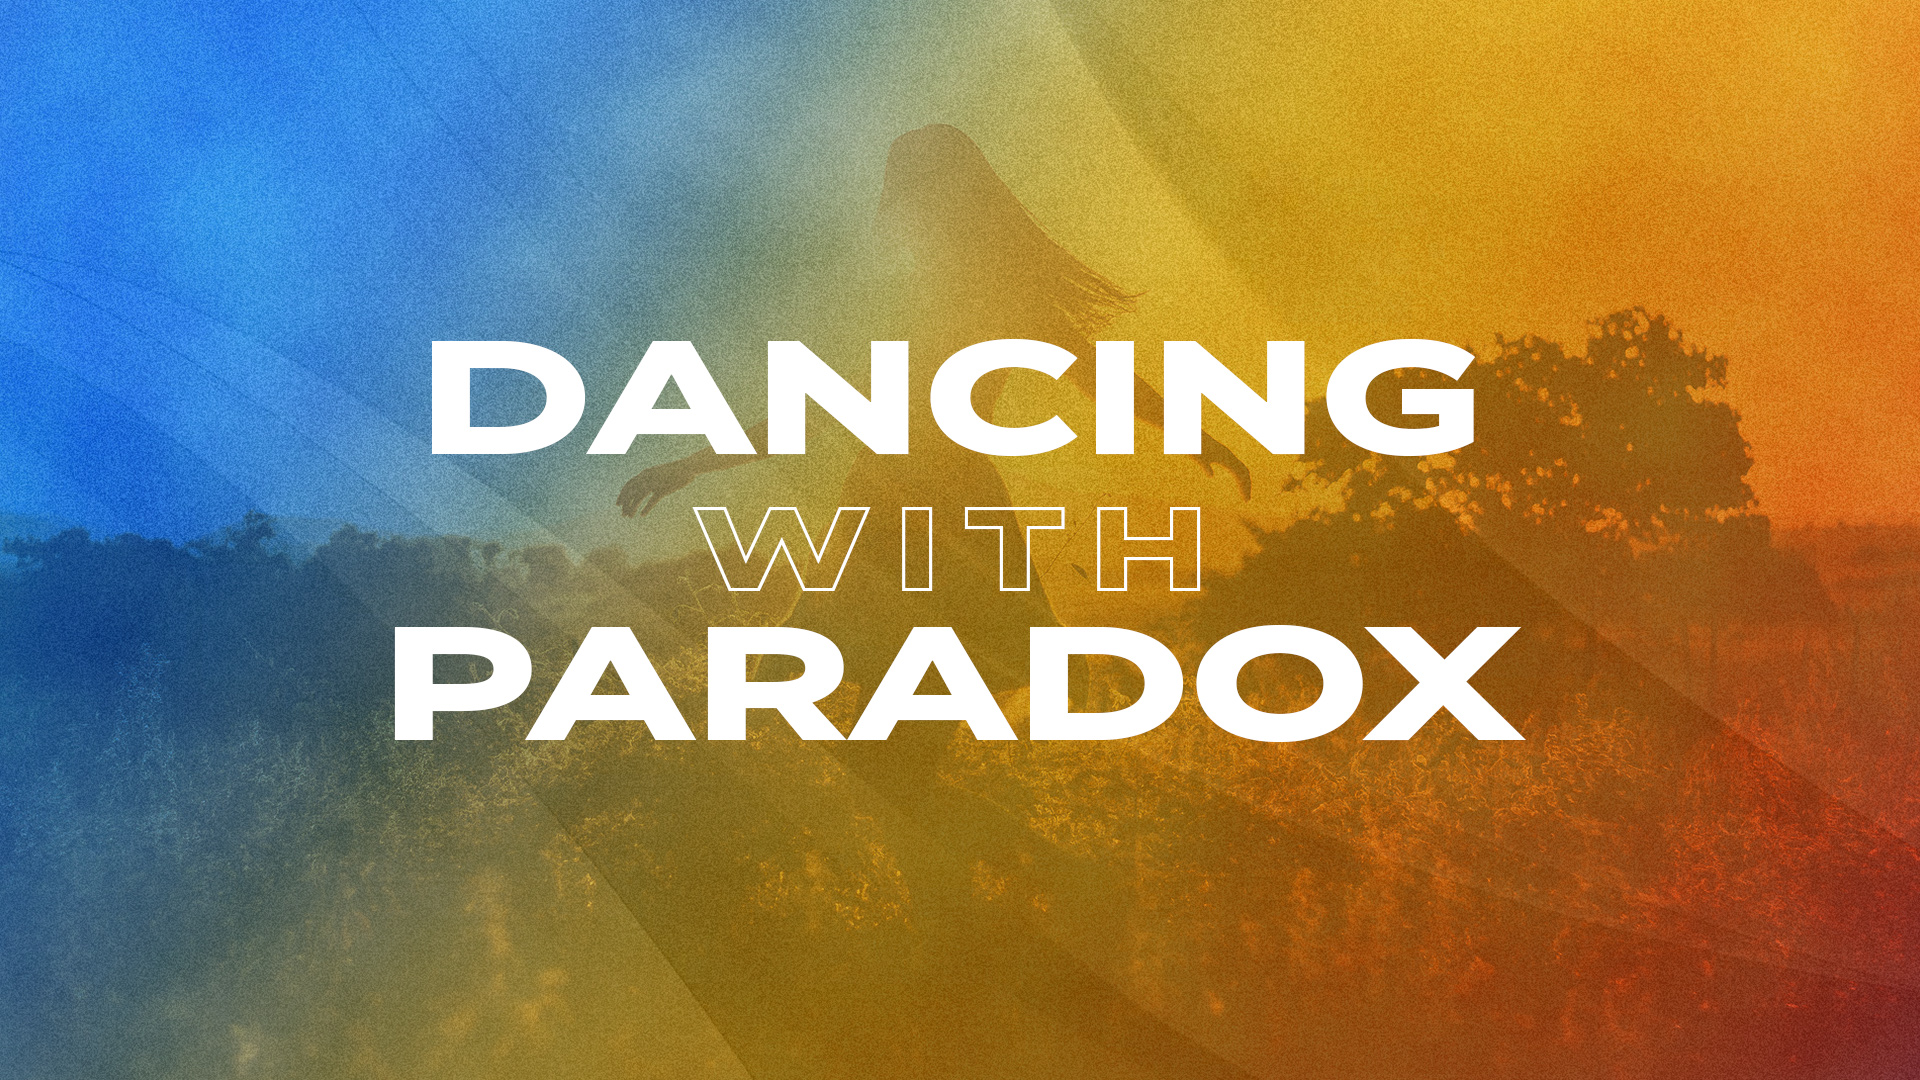 Dancing with Paradox